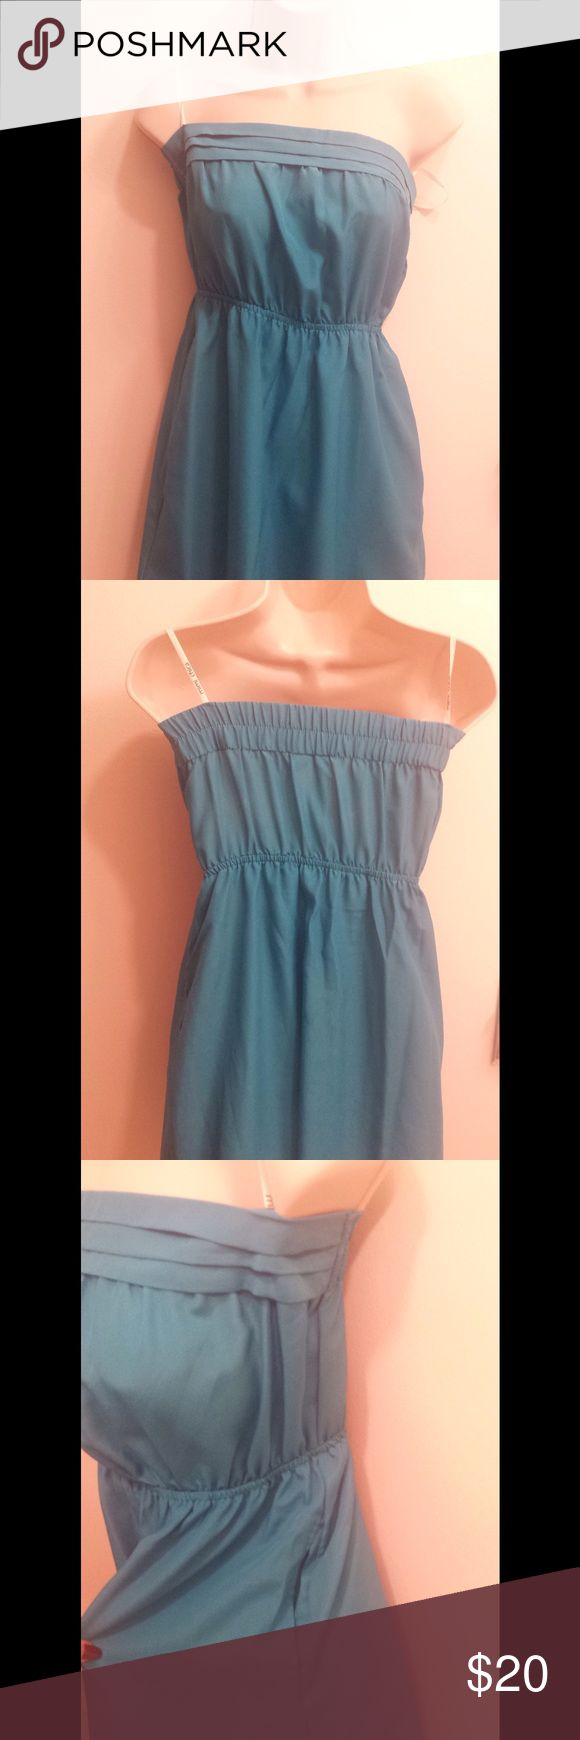 Cute blueish teal strapless summer dress Cute blueish teal summer dress. Strapless with pockets on each side. Elastic around the waist area. Pleated top around the breast area,elastic on the back top area of breast. Has an under layer of cloth. Small stain in the front & back, (from ironing accident) not too noticeable. Pics upon request Mimi Chica Dresses Strapless